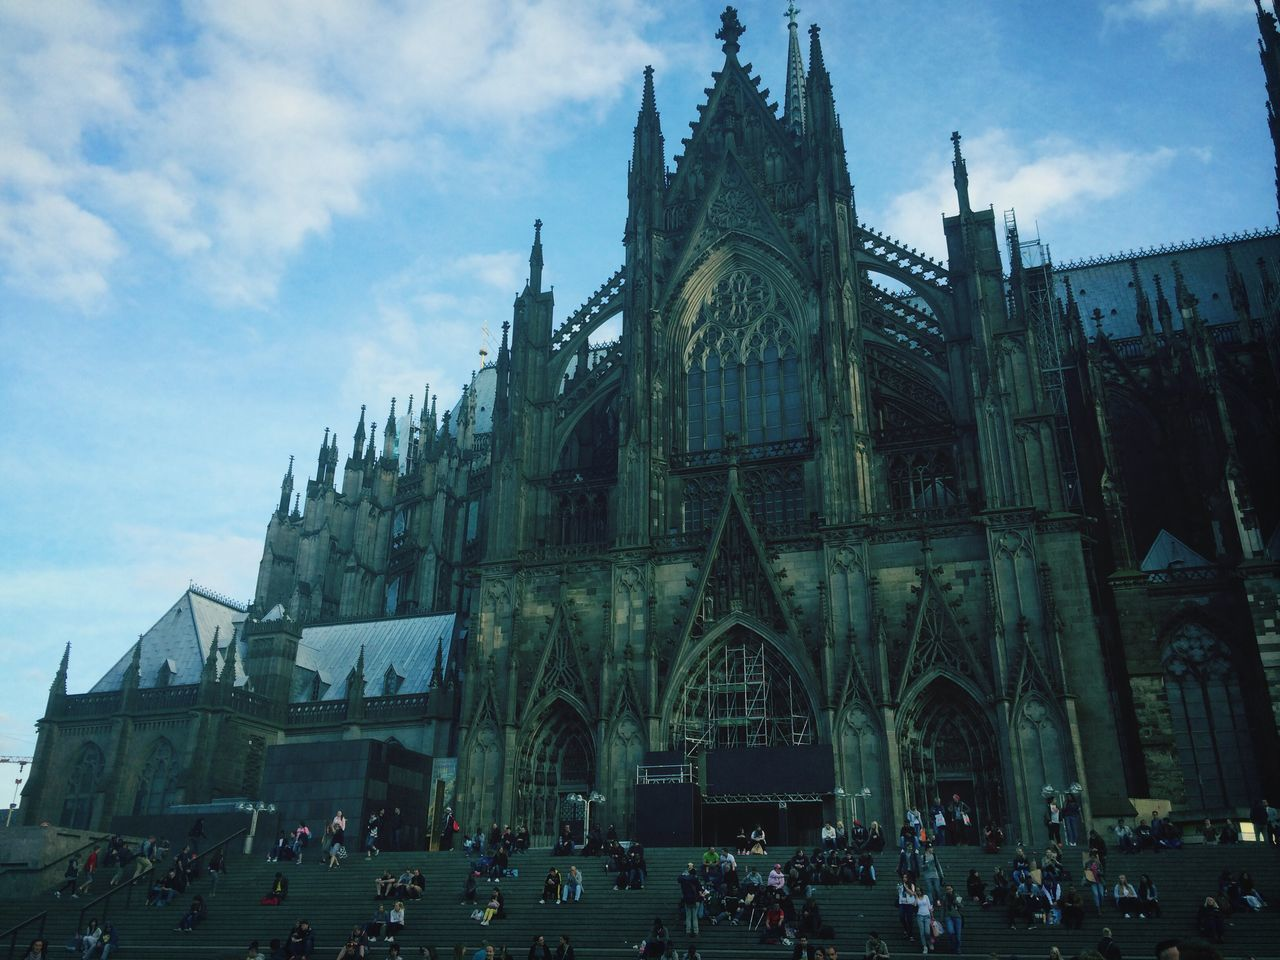 Medieval cathedral in Germany